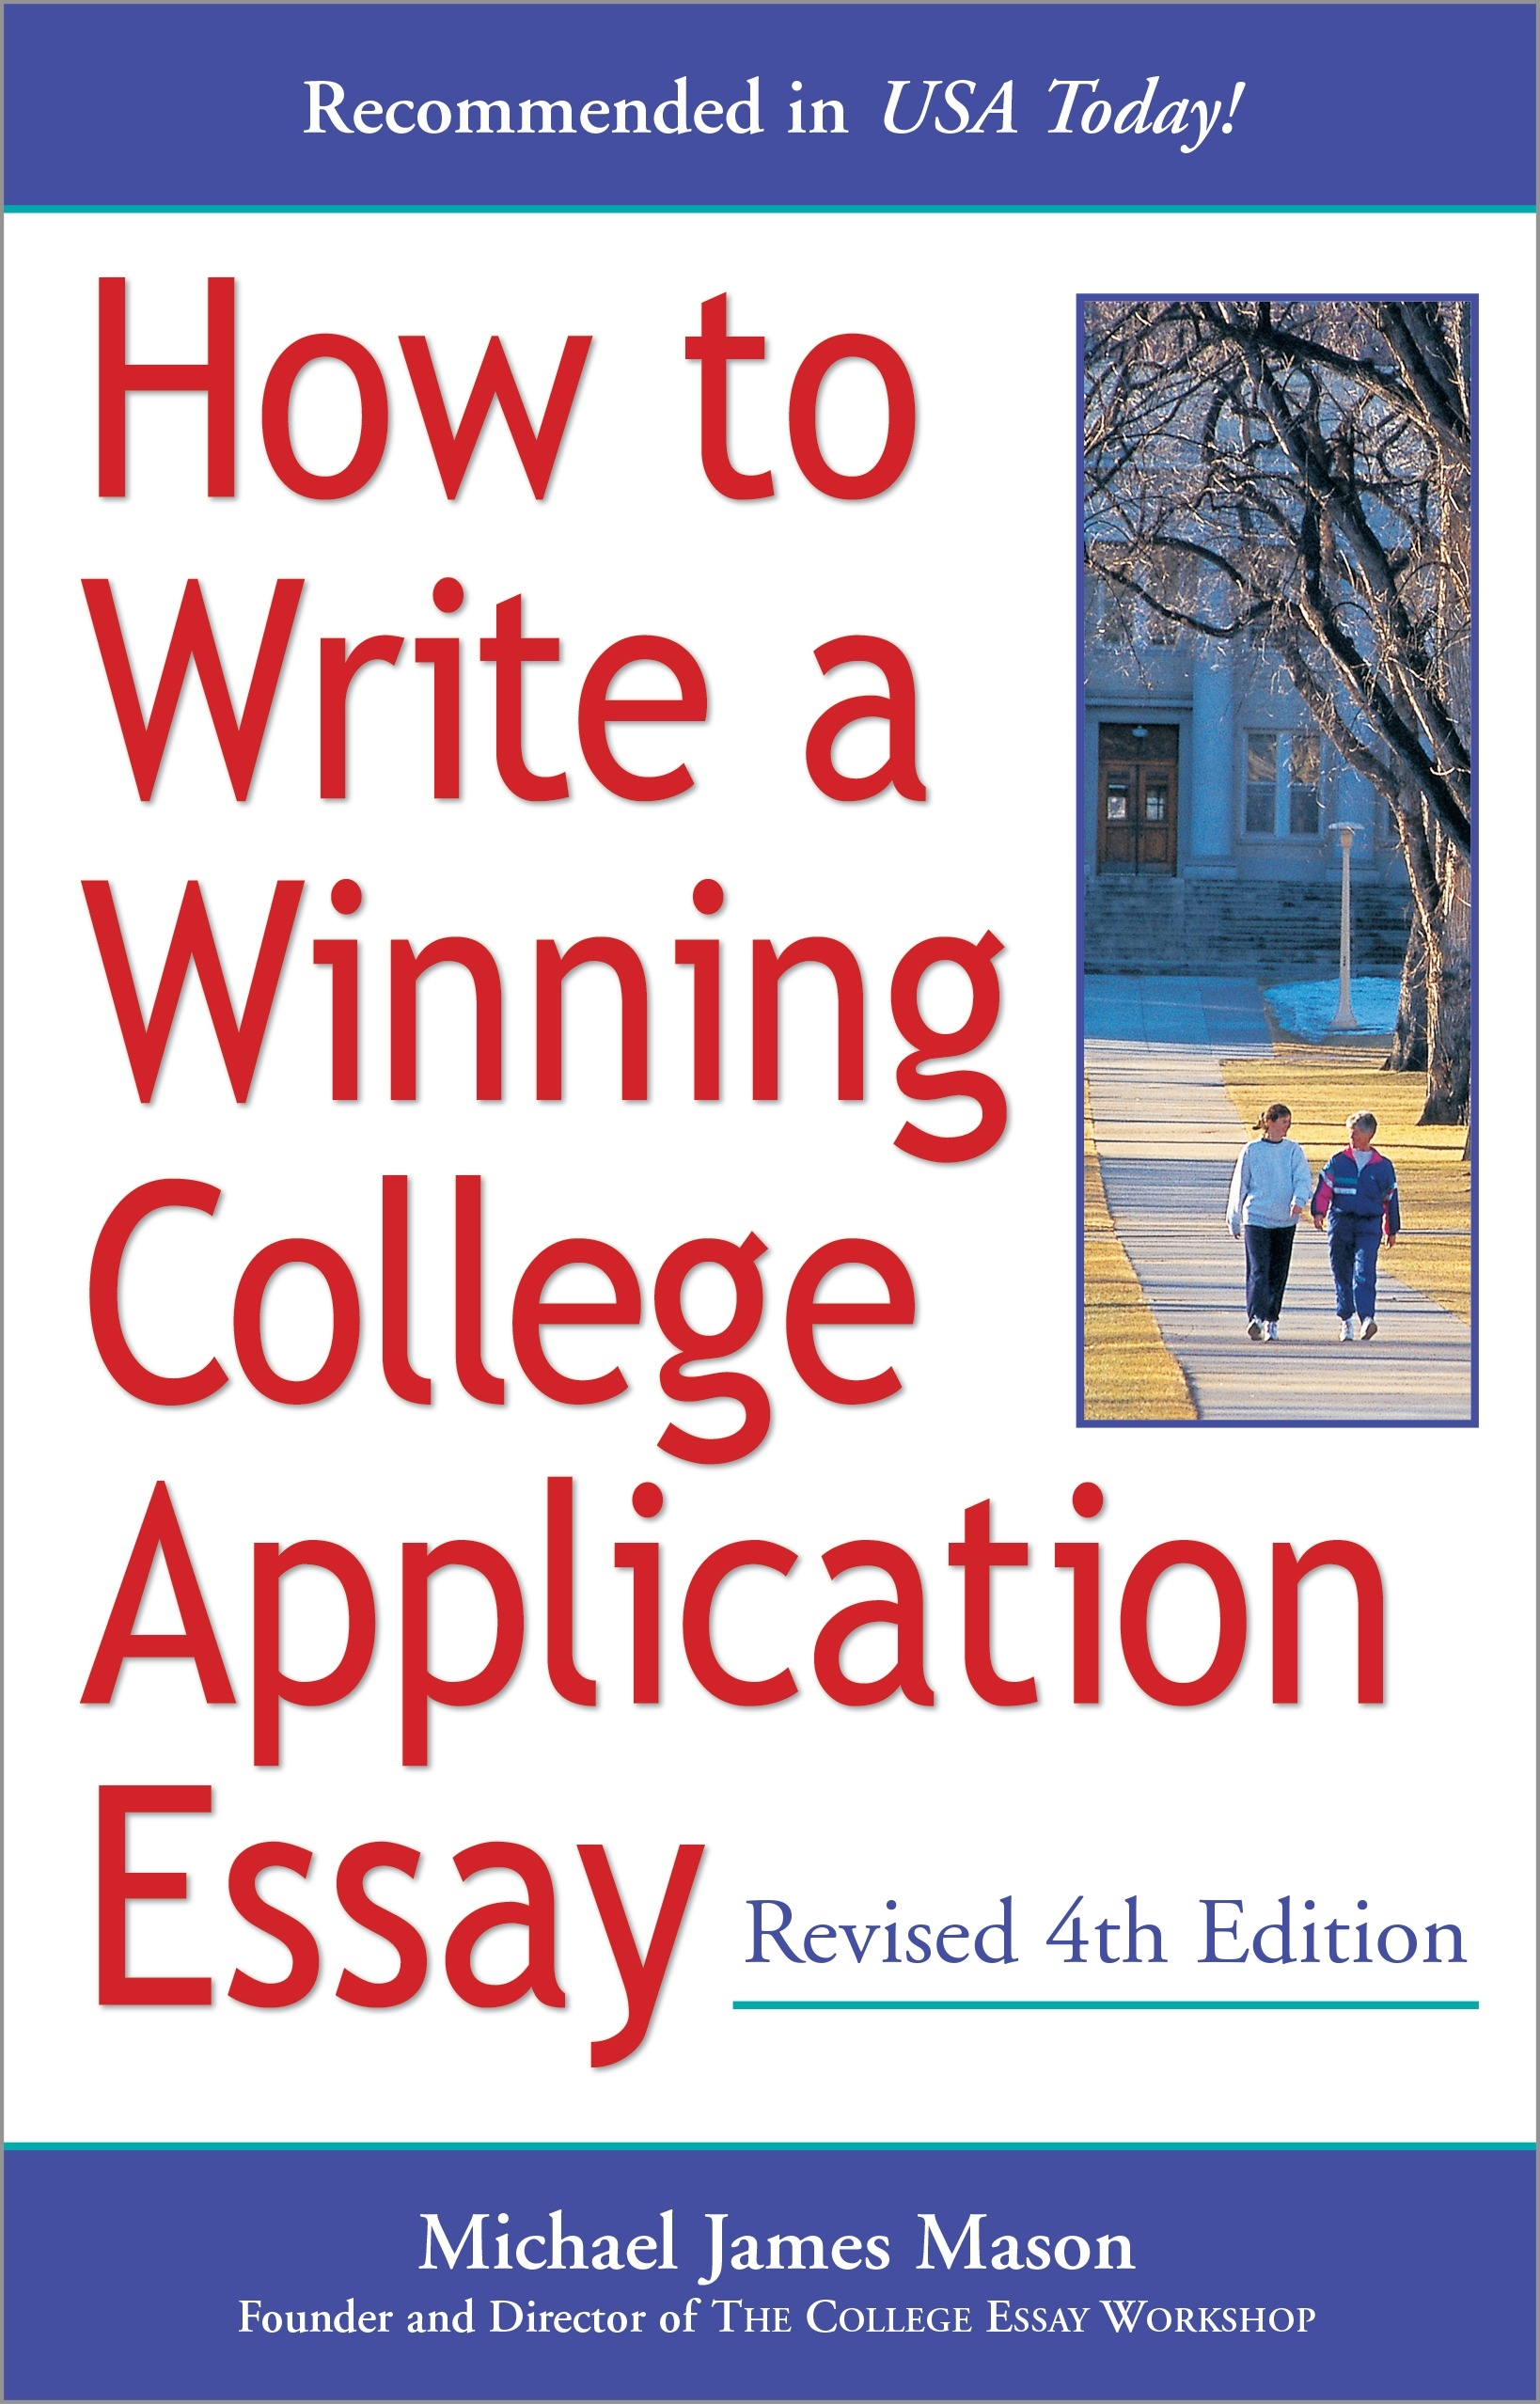 College application essay help online michael mason